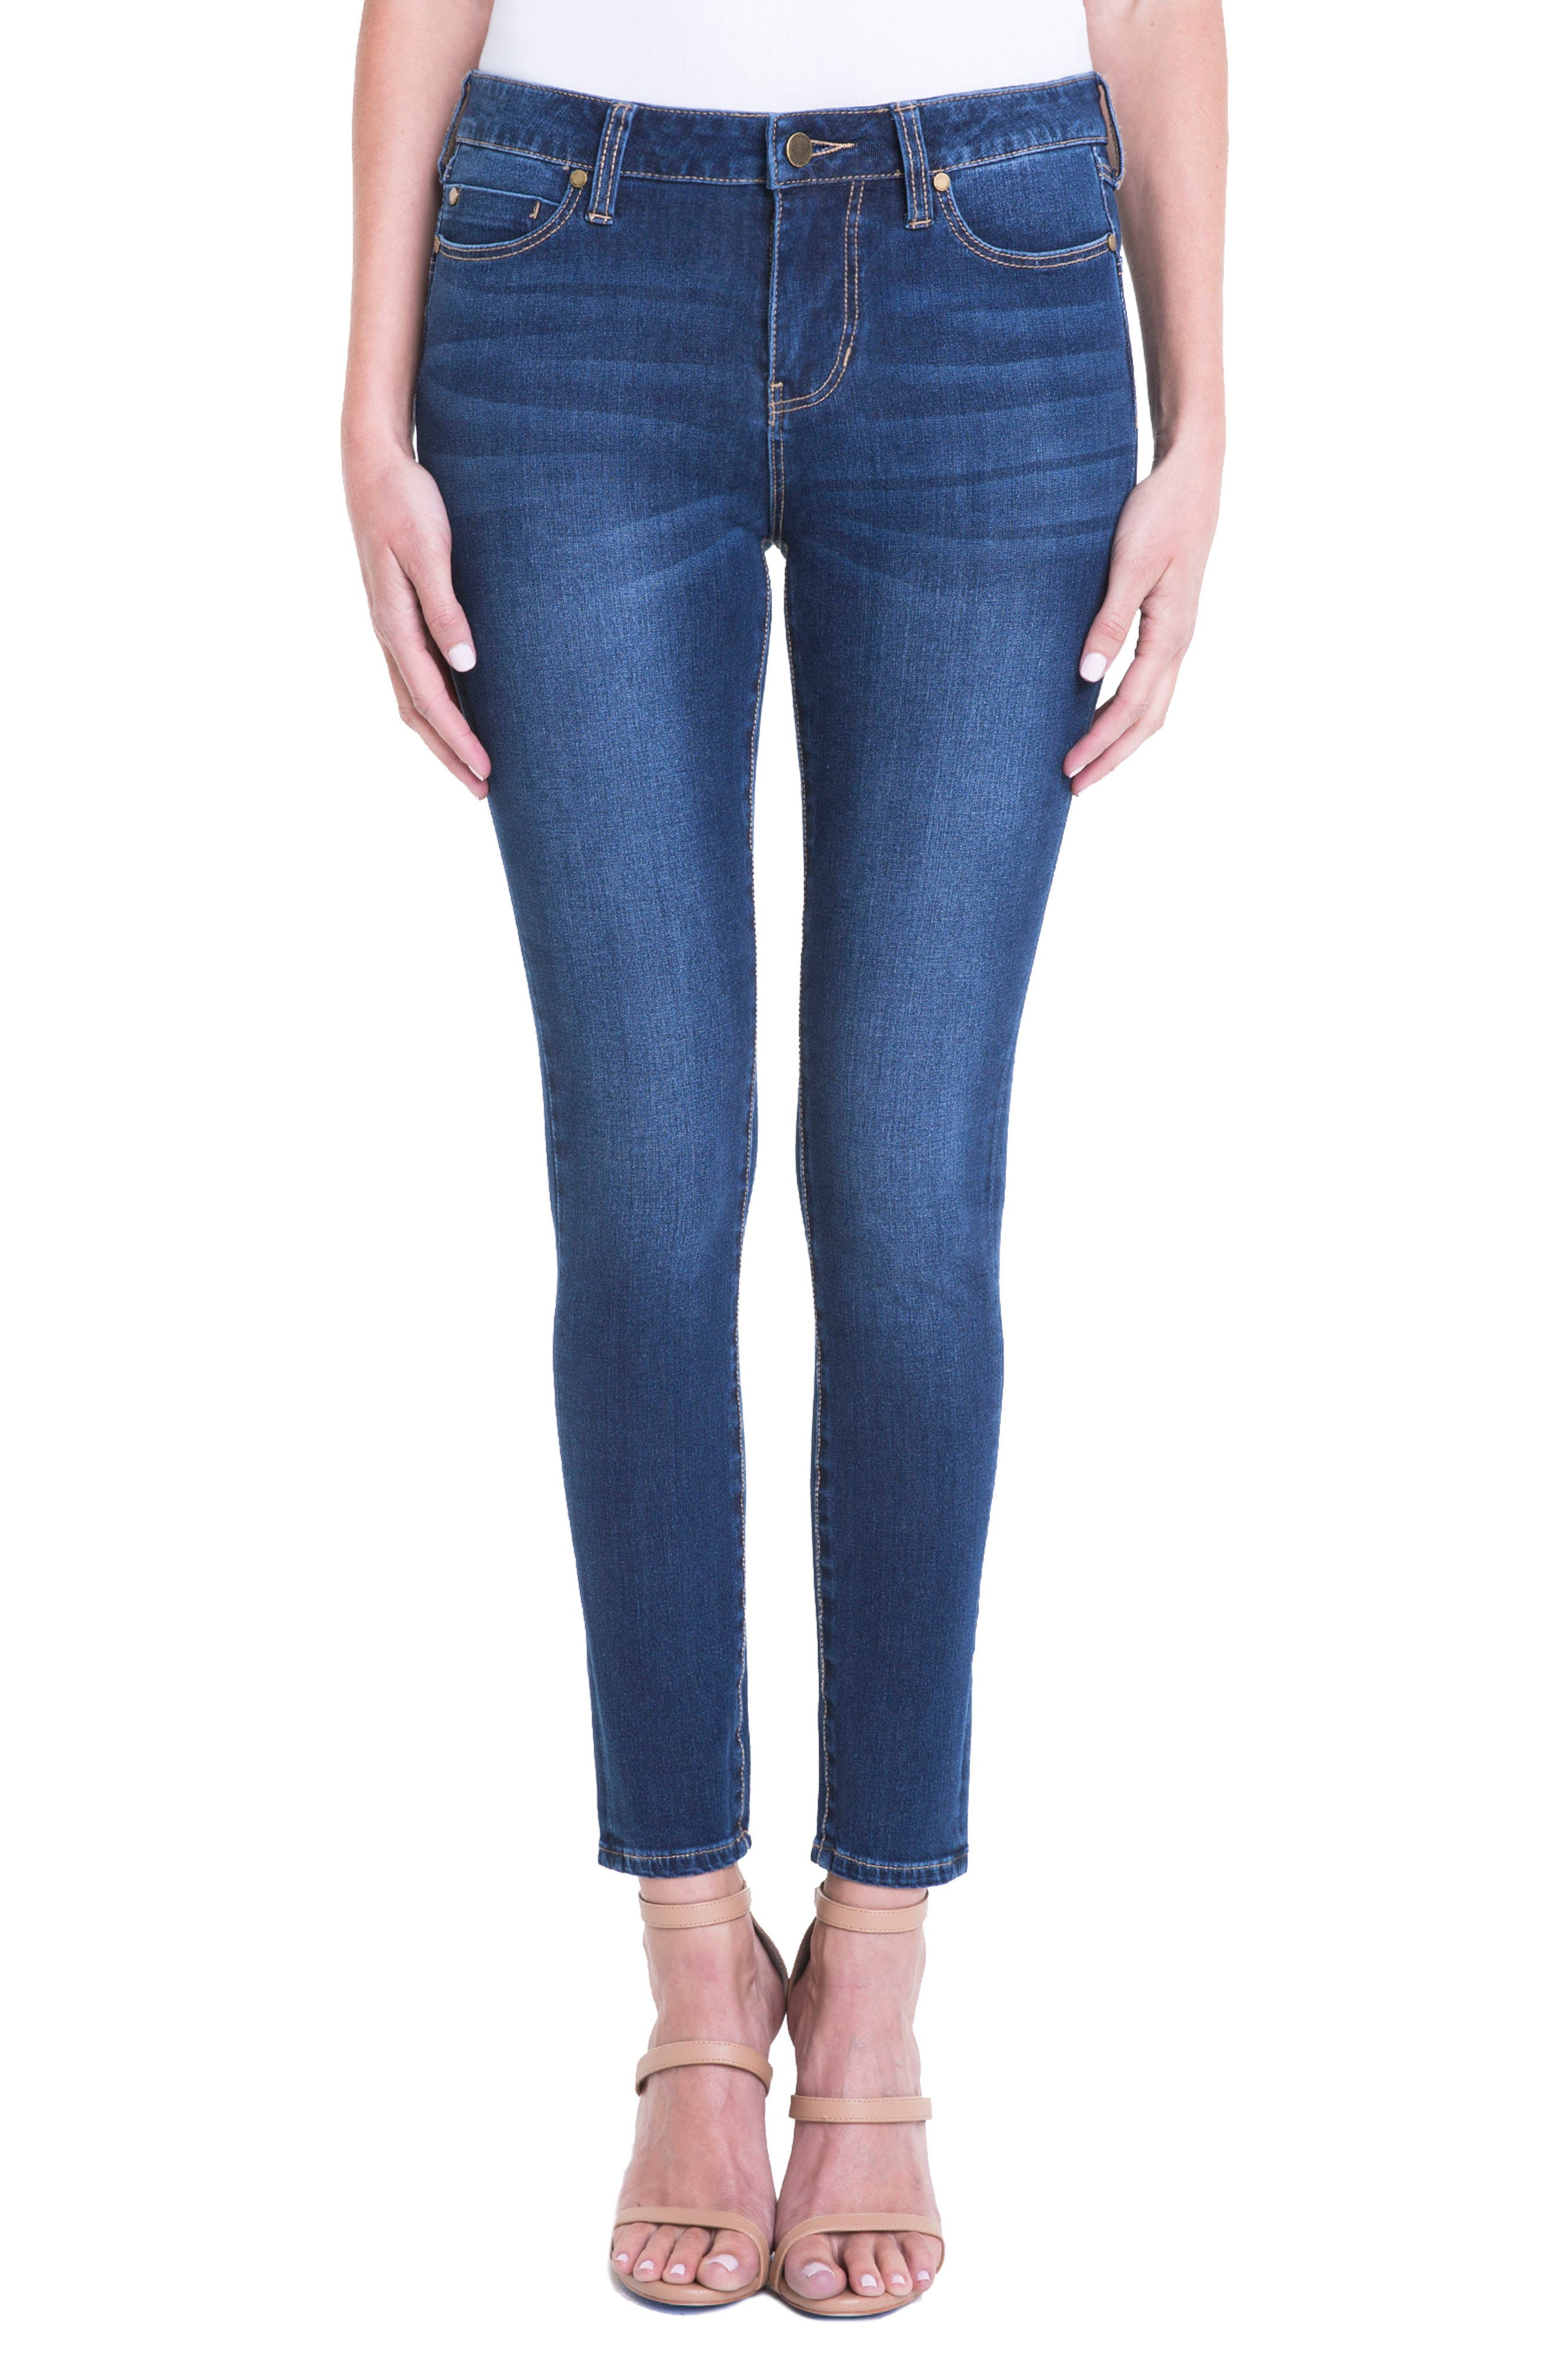 Piper Hugger Lift Sculpt Ankle Skinny Jeans,                             Main thumbnail 1, color,                             407